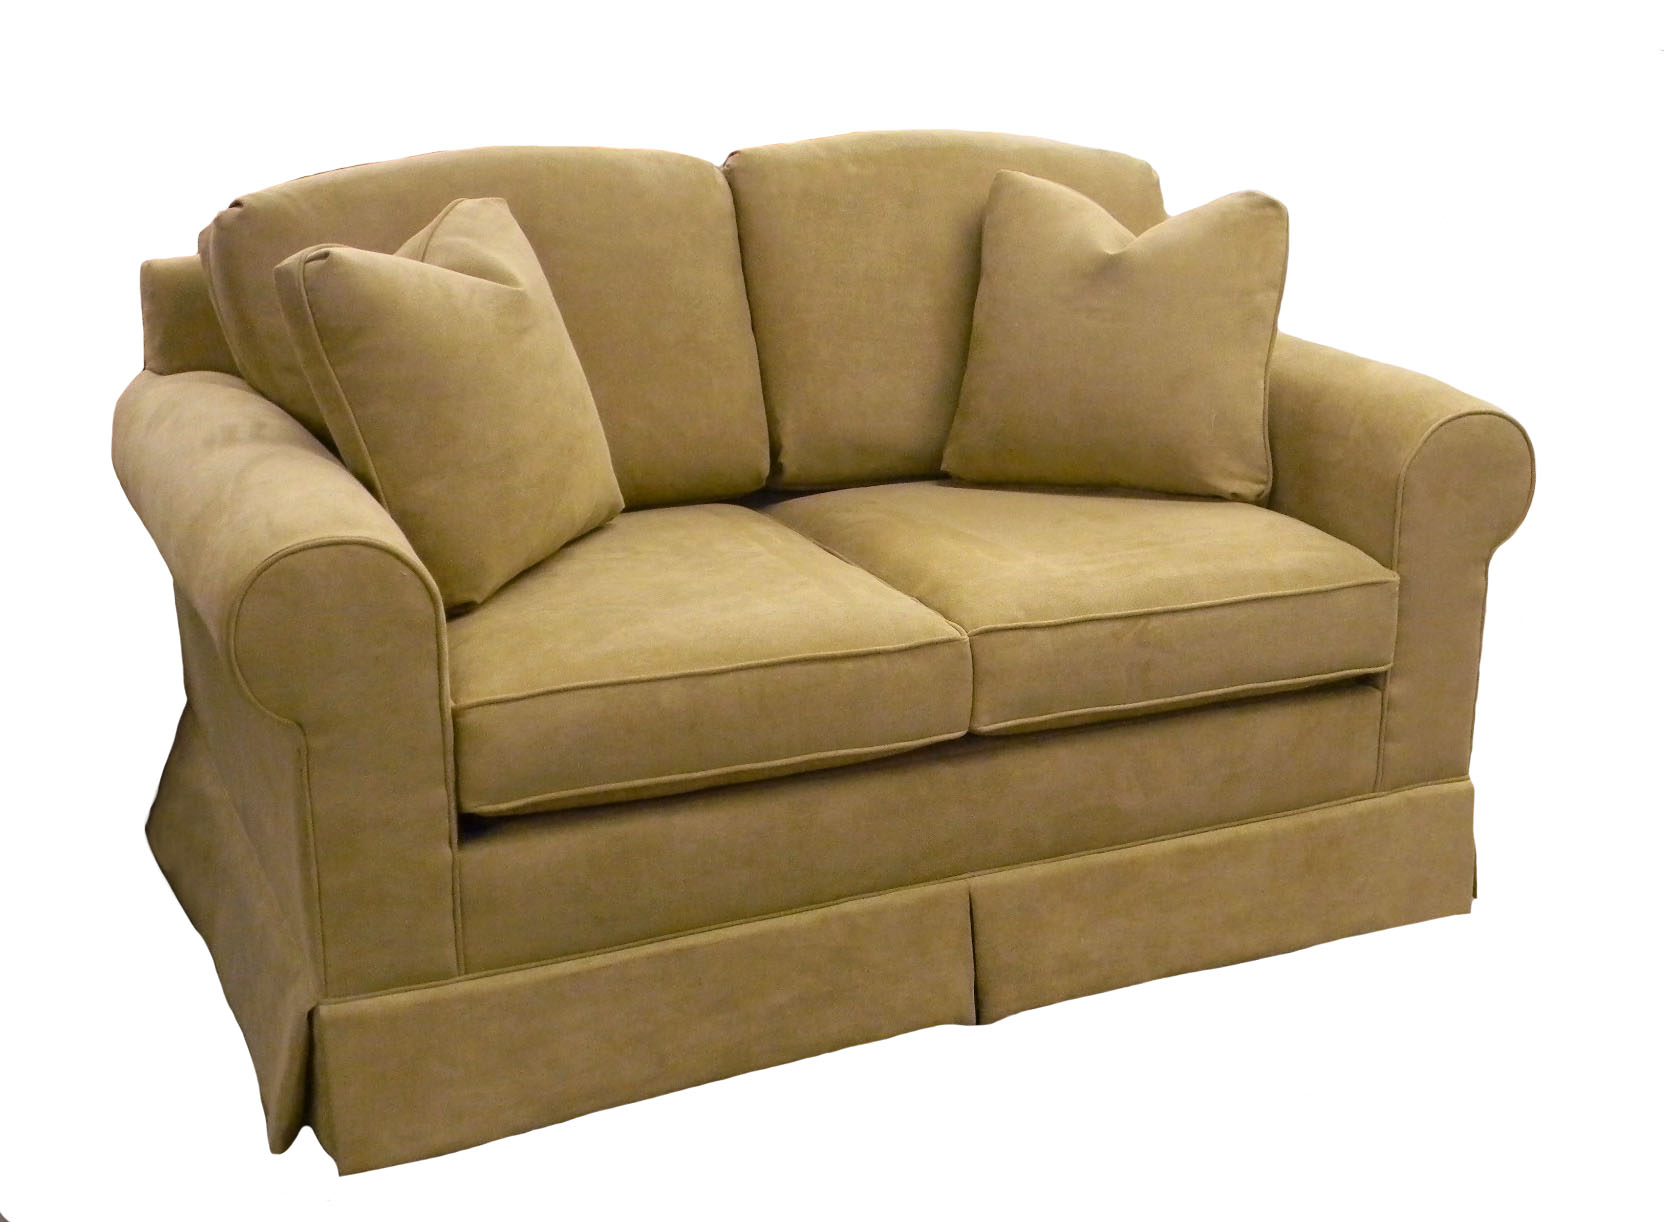 Hughes Twin Sleeper Sofa Chair Small Sleeper Couch Carolina Chair